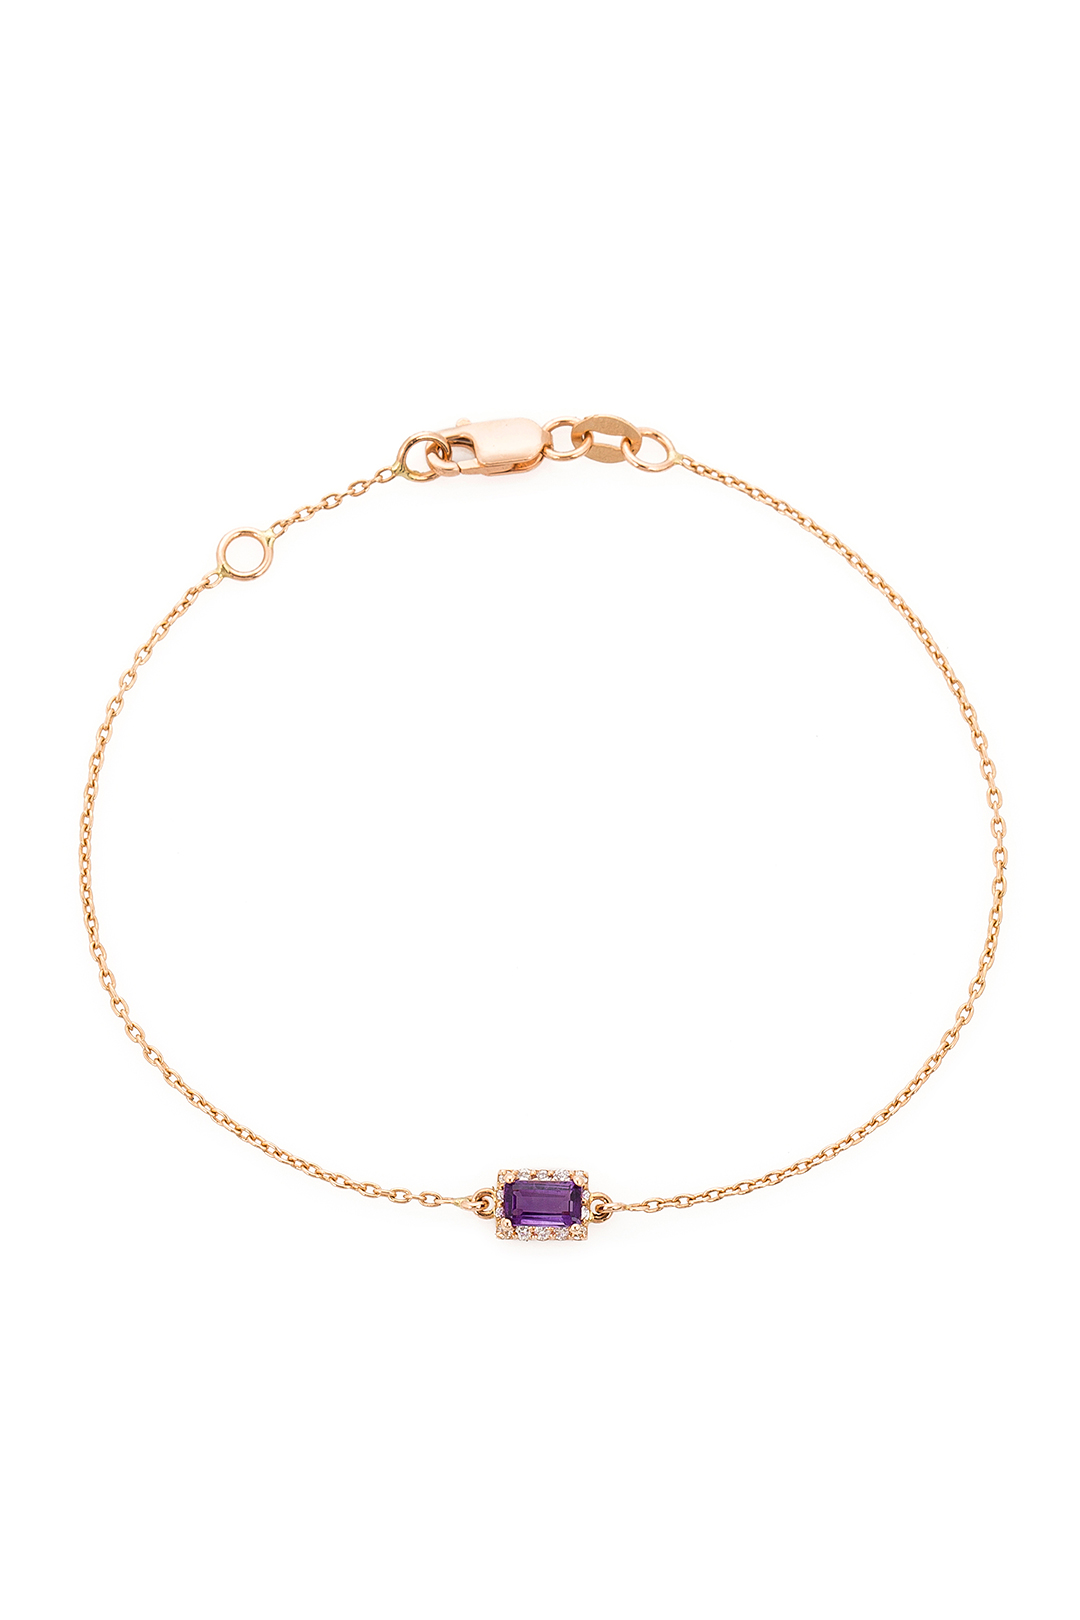 RECTANGLE AMETHYST AND DIAMOND BRACELET